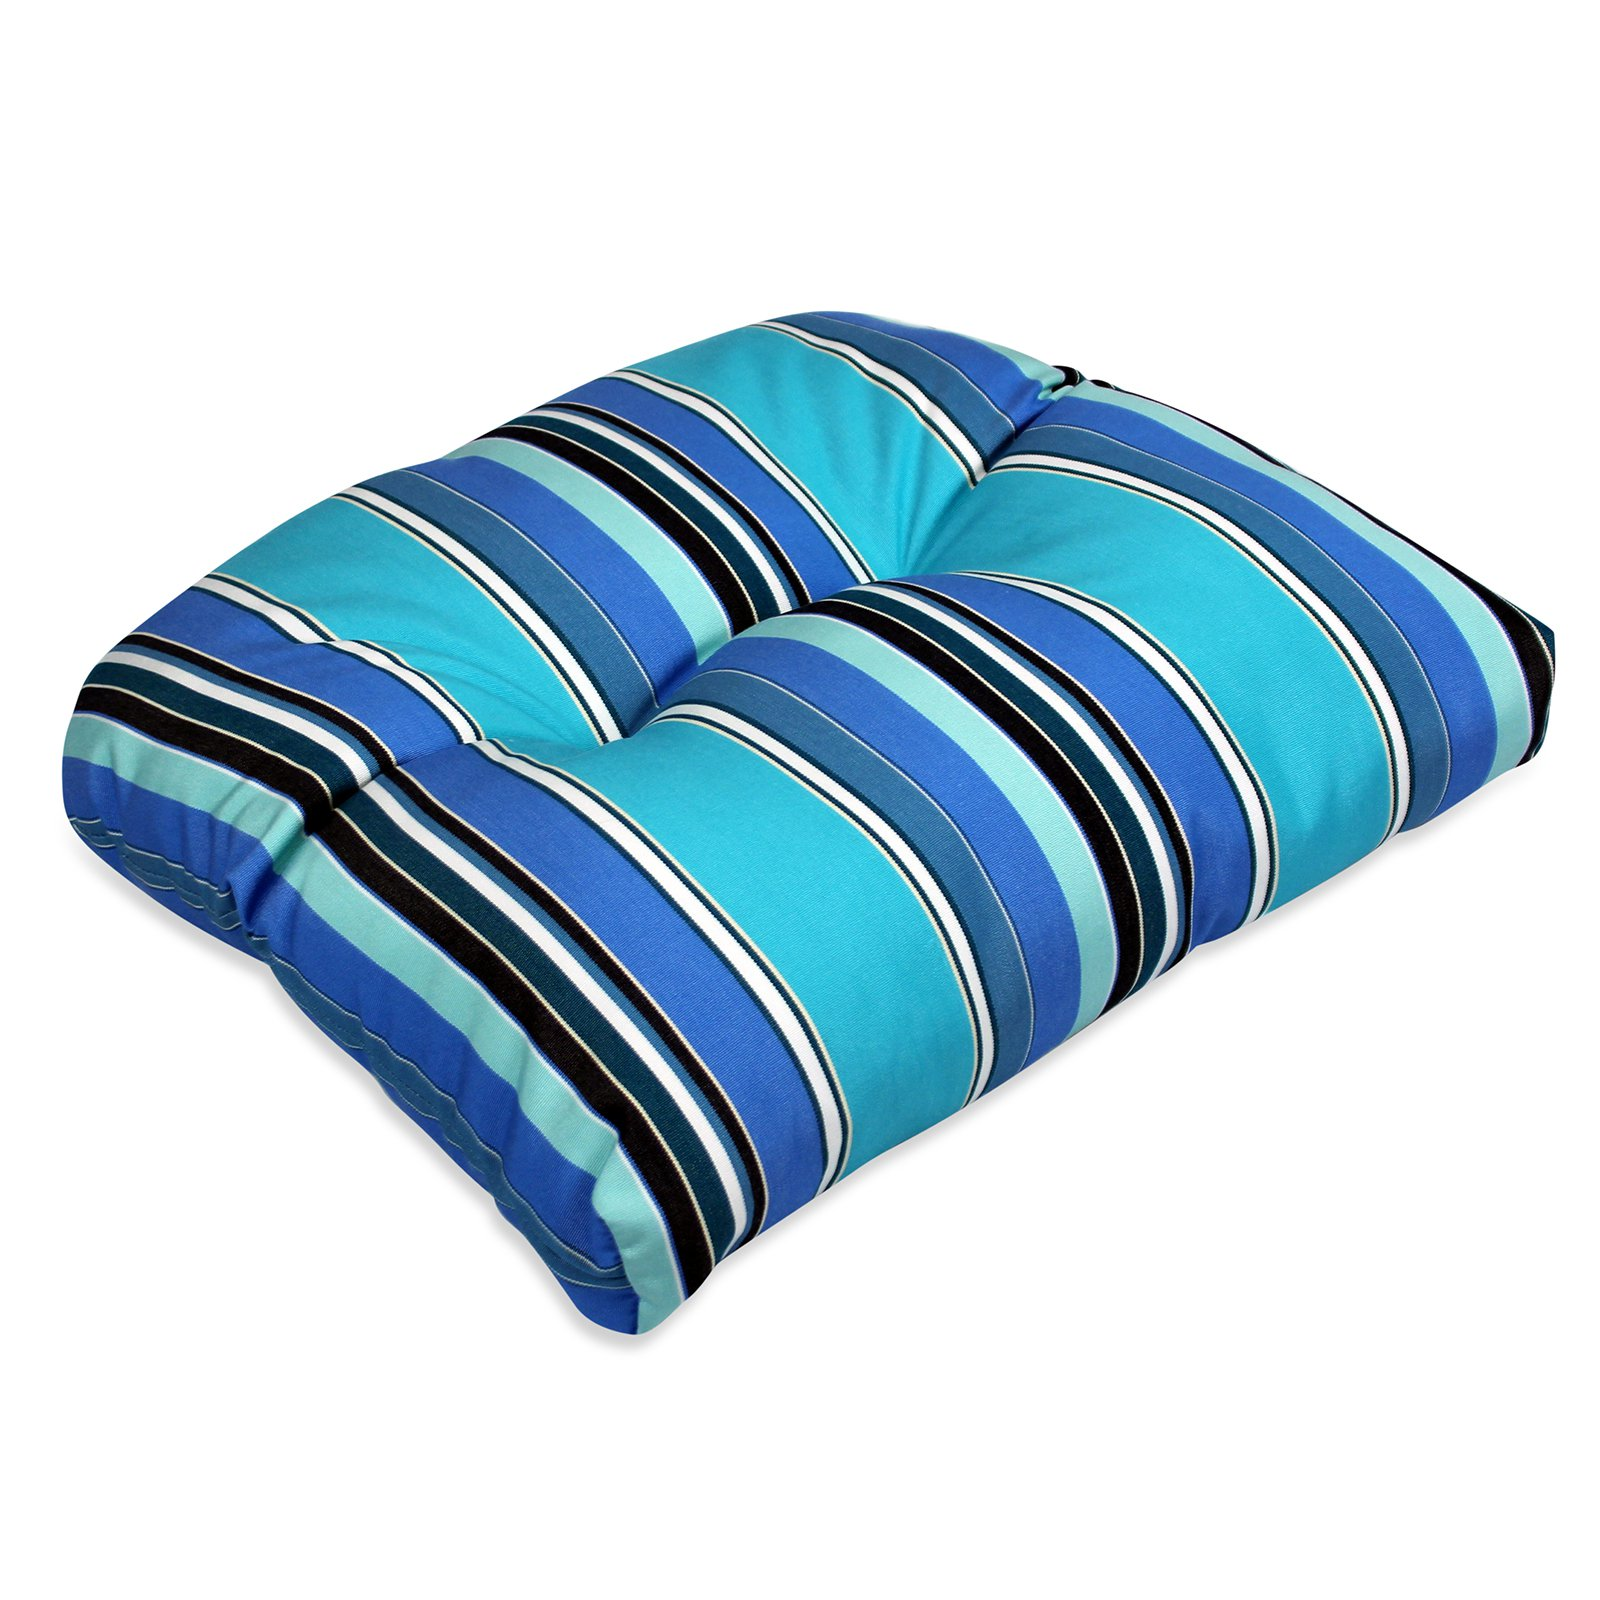 Comfort Classics 20 x 18 in. Sunbrella Wicker Seat Cushion